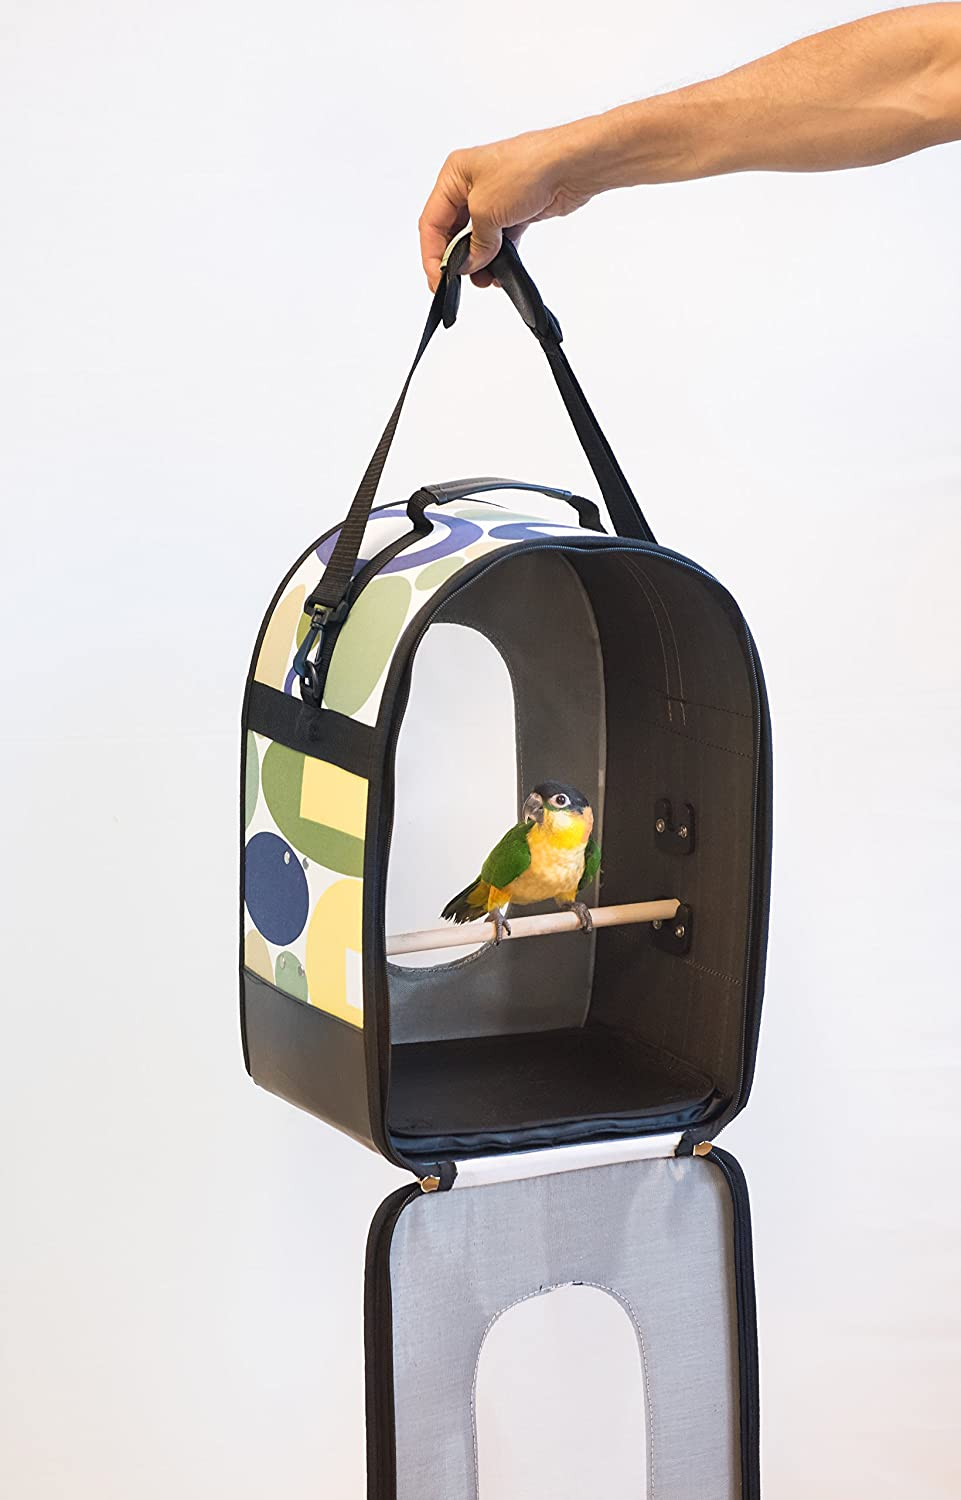 Amazon Com Prevue Pet Products Soft Sided Bird Travel Carrier With Perch Large Multicolor Pet Supplies